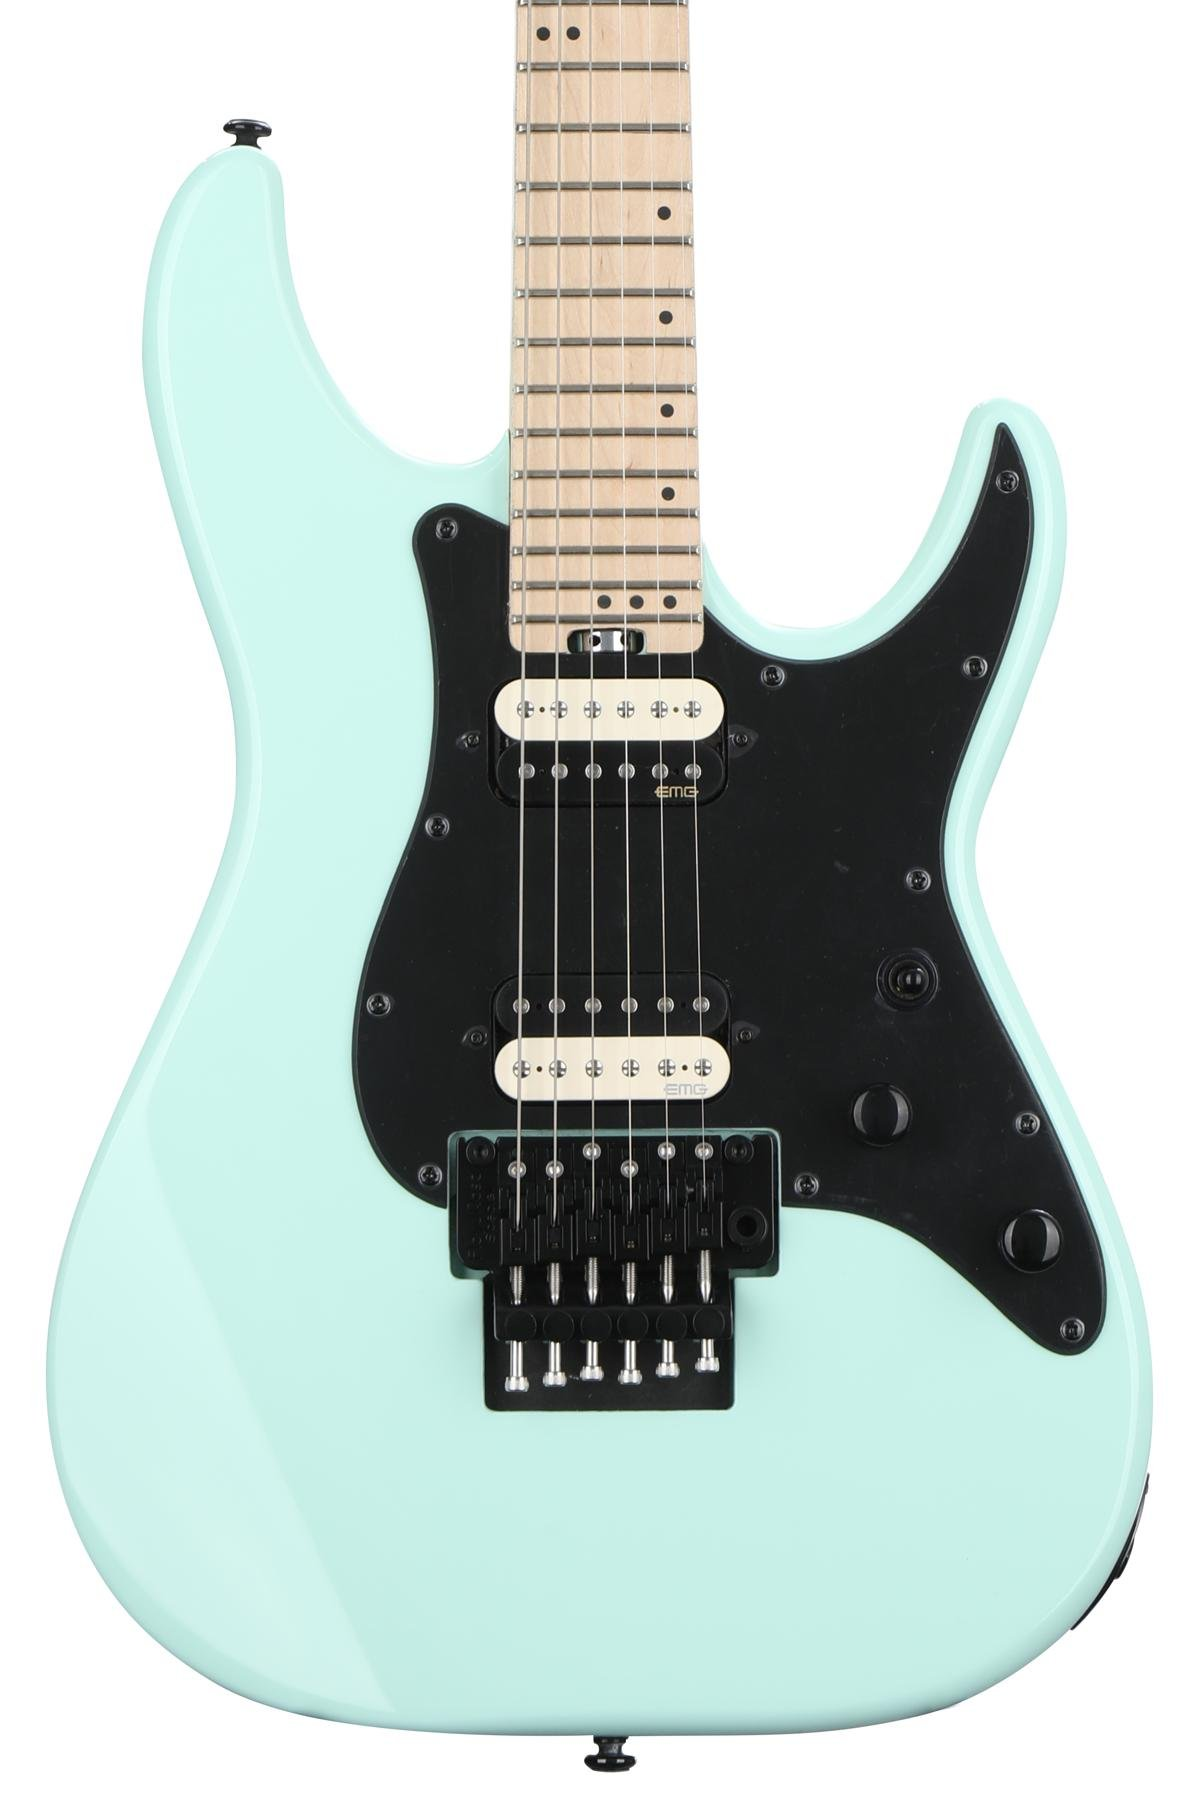 Schecter Sun Valley Super Shredder With Floyd Rose Sea Foam Green Low Amplifier Is Intended To Be Used In Conjunction An Electric Guitar Image 1